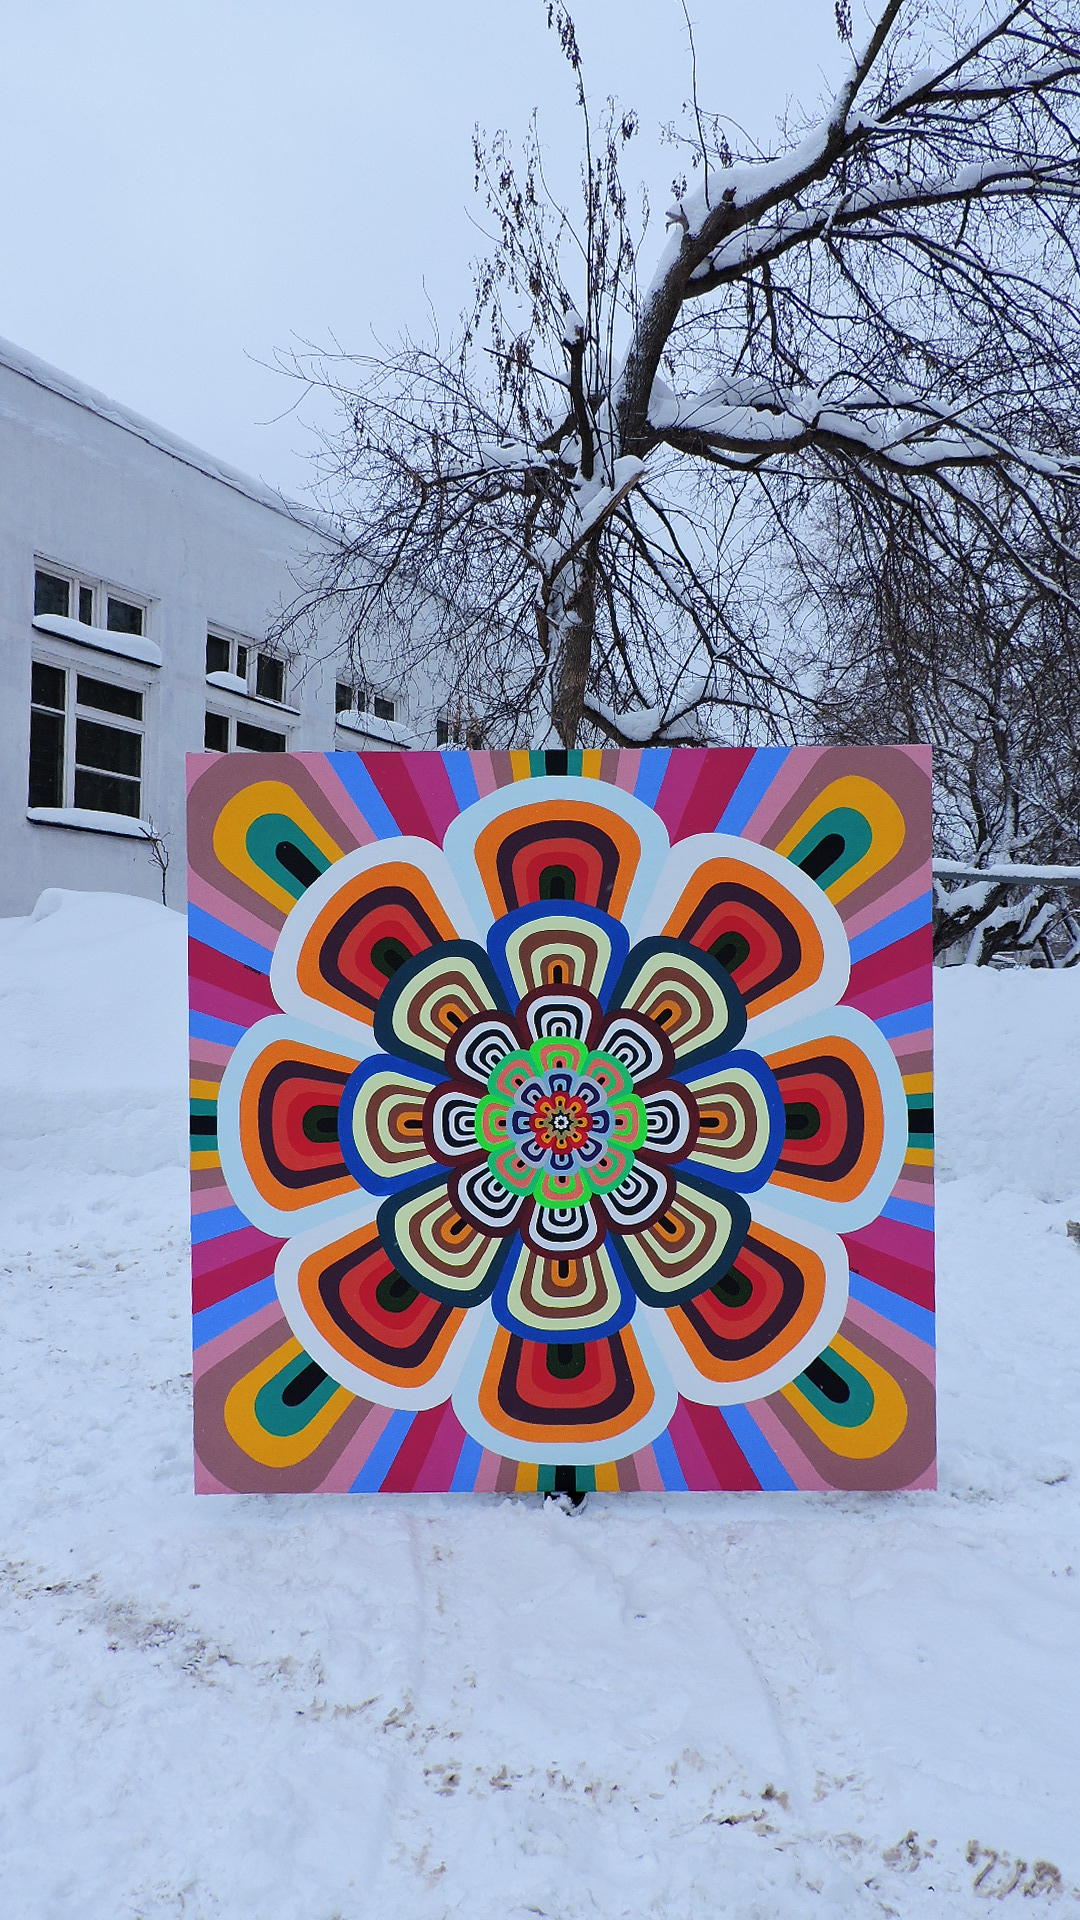 A huge picture on canvas with the image of mandala